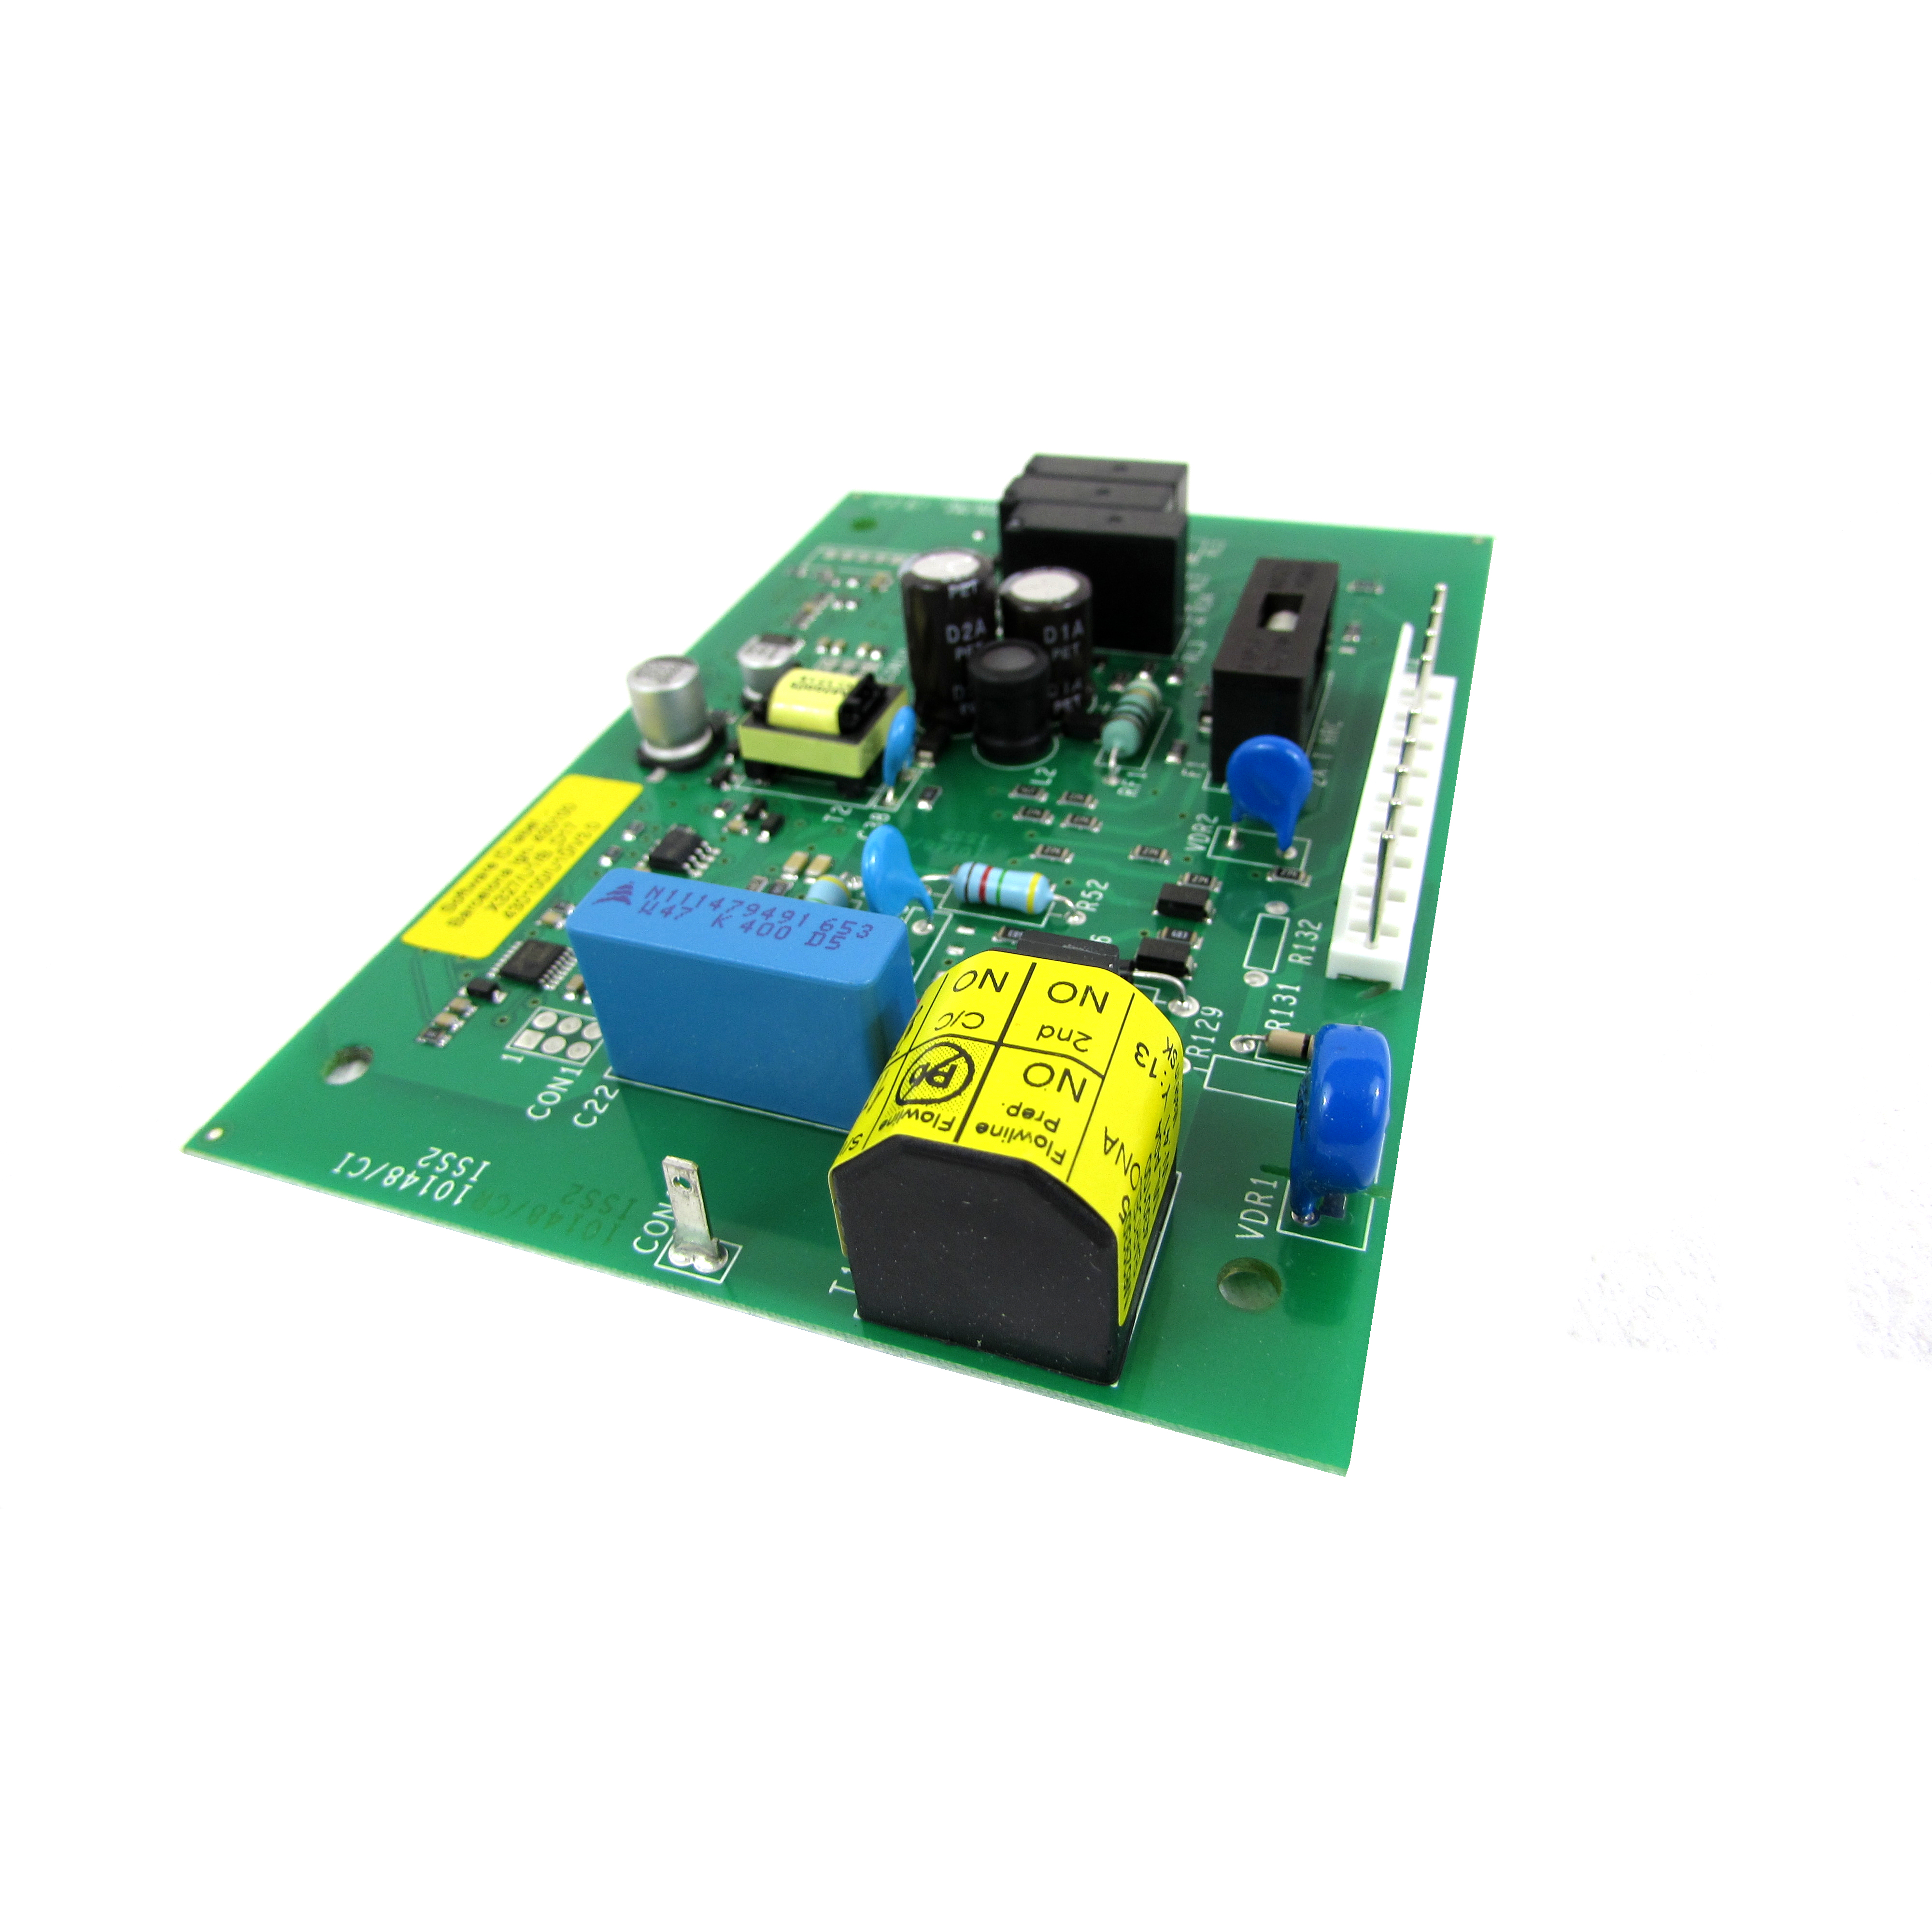 Baxi Printed Circuit Board Pcb 241838 Pdq Spares Ltd Electronic Prototype